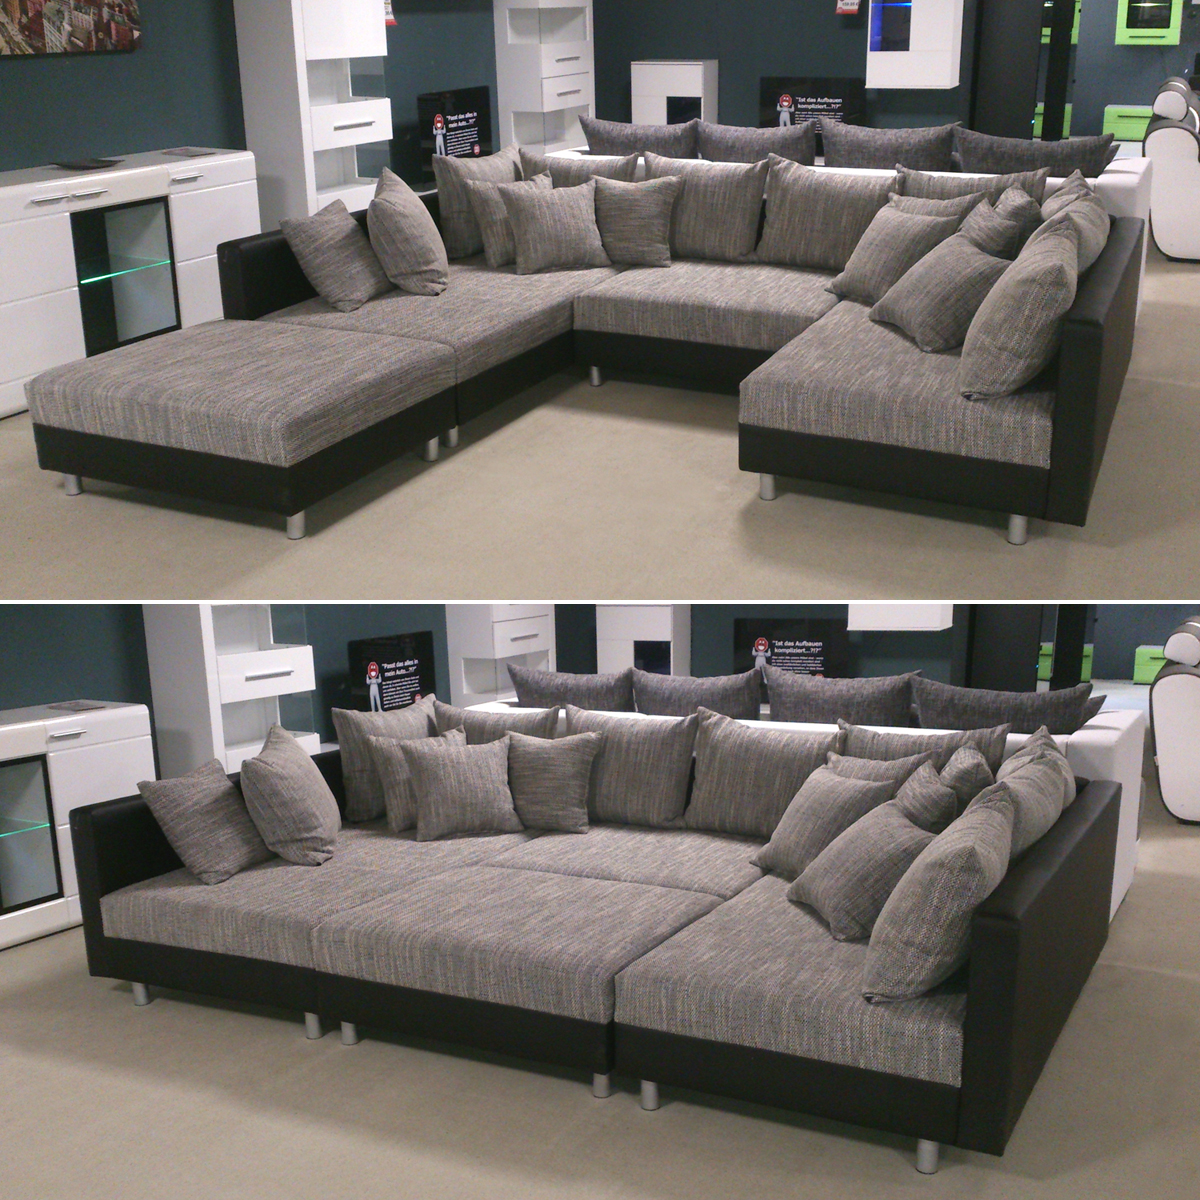 Xxl sofa u form design sectional sofa matera xxl with led for Ecksofa couch